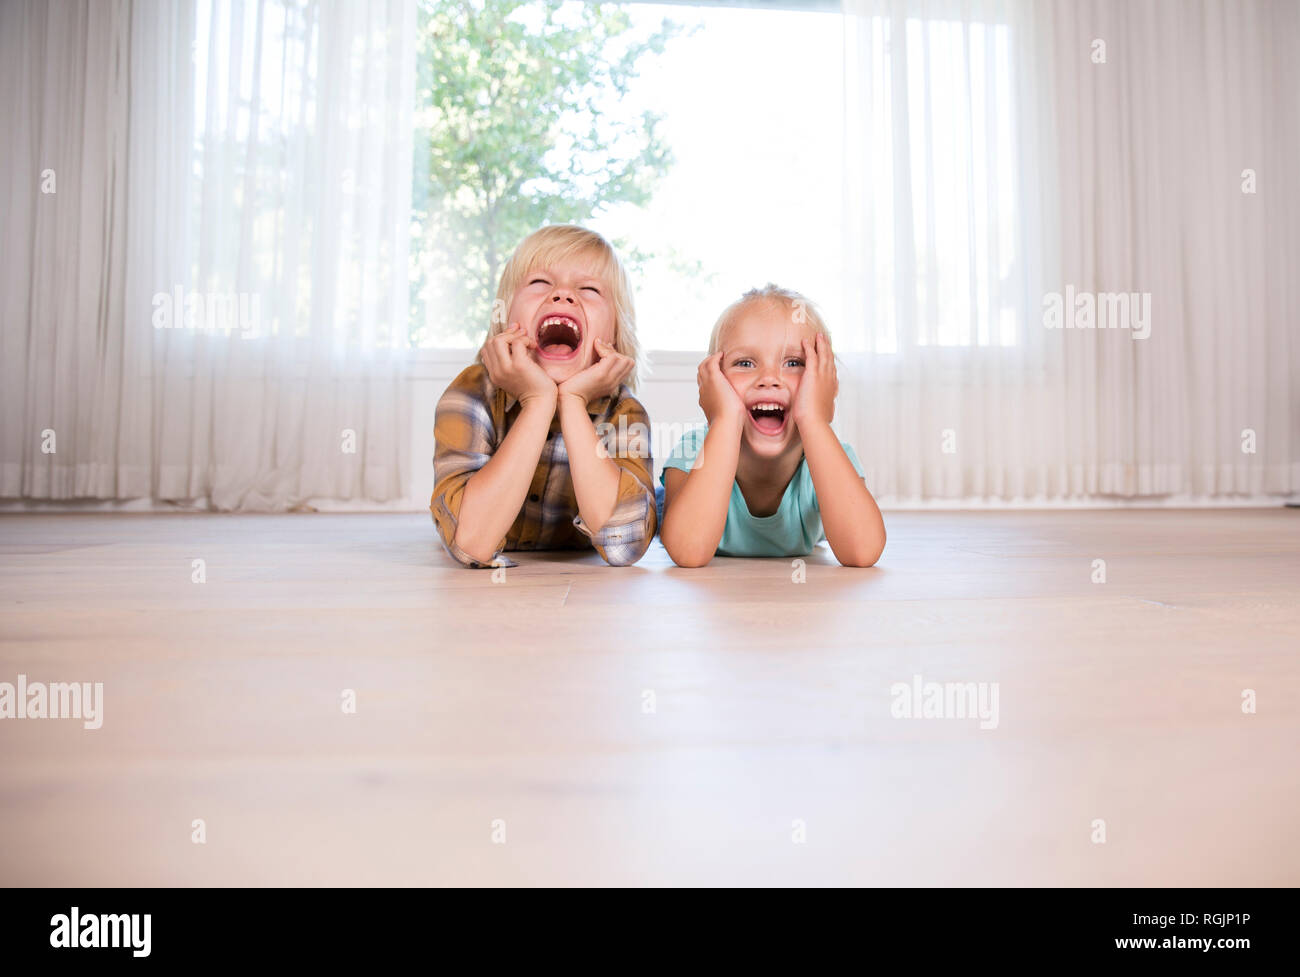 Brother and sister lying on the floor at home grimacing - Stock Image